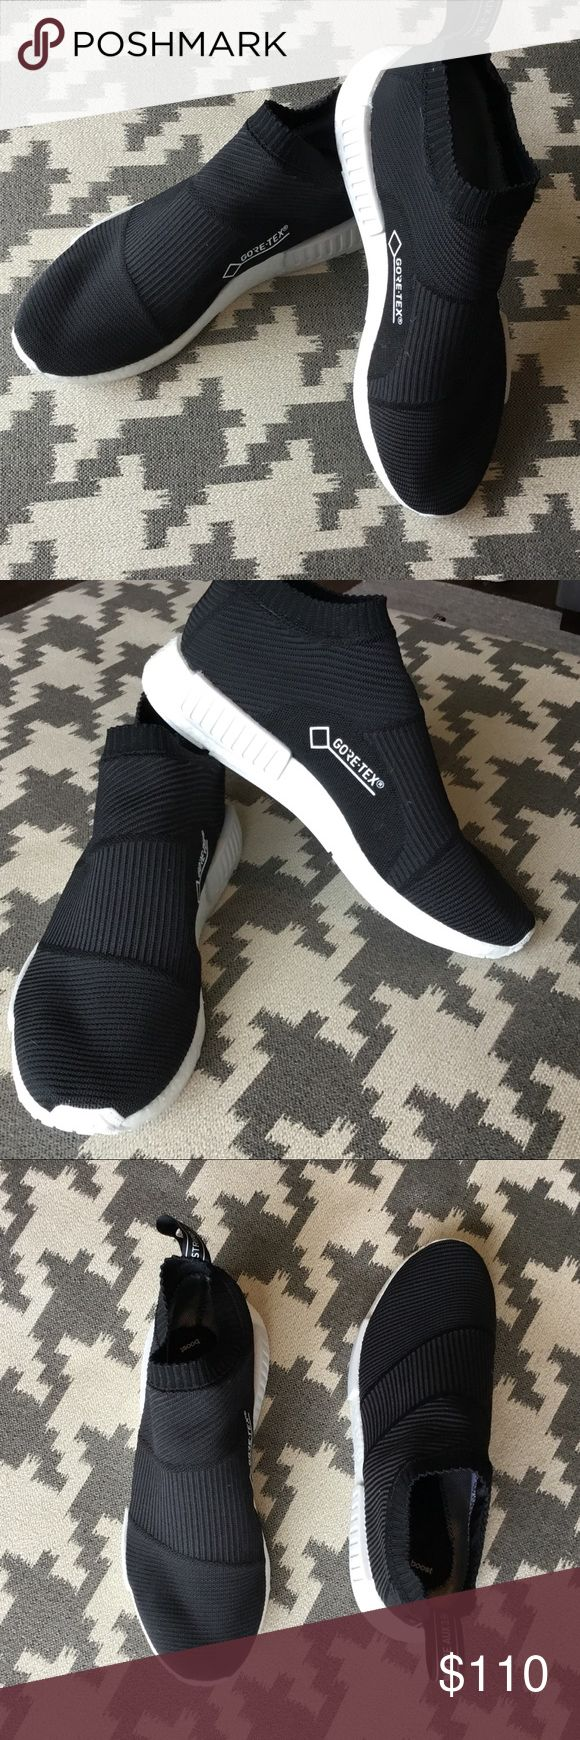 NEW Adidas NMD Primeknit Shoes - Men's NEW Adidas NMD Primeknit Shoes - Men's. Slip on shoes that provide a sock like fit adidas Shoes Athletic Shoes